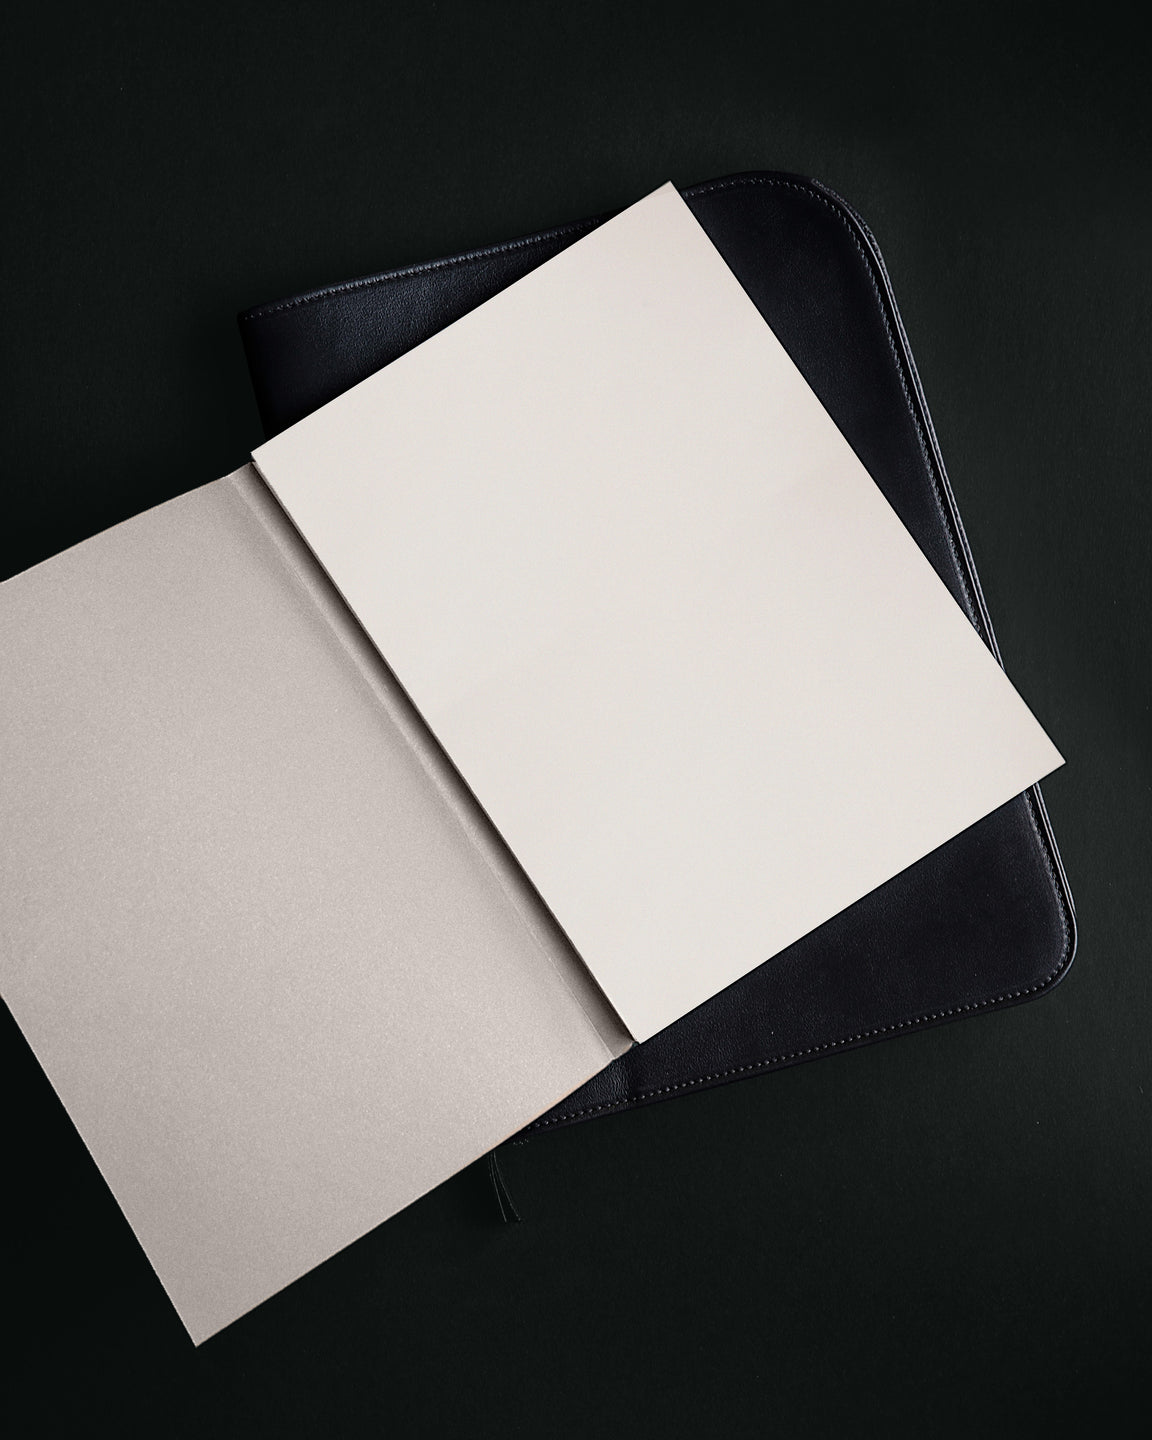 Datum Notepad 4-pack - Datum Notepad 4-pack